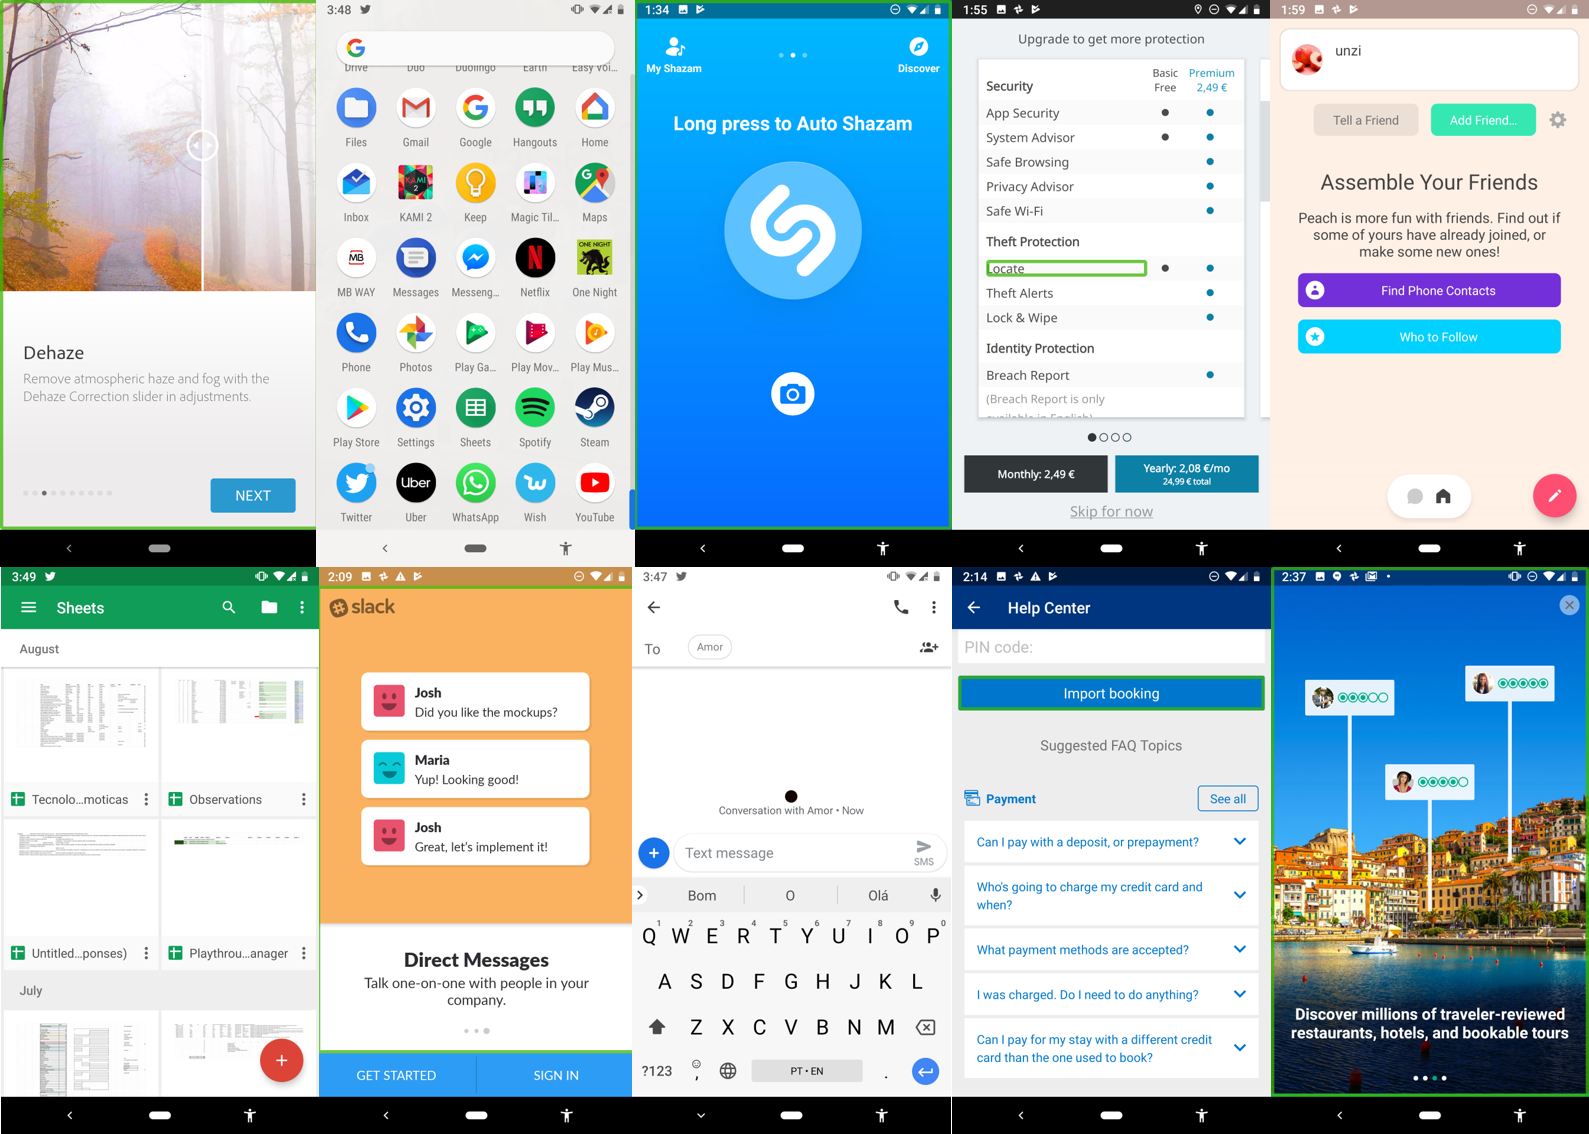 10 different smartphone applications with 10 very different interfaces.